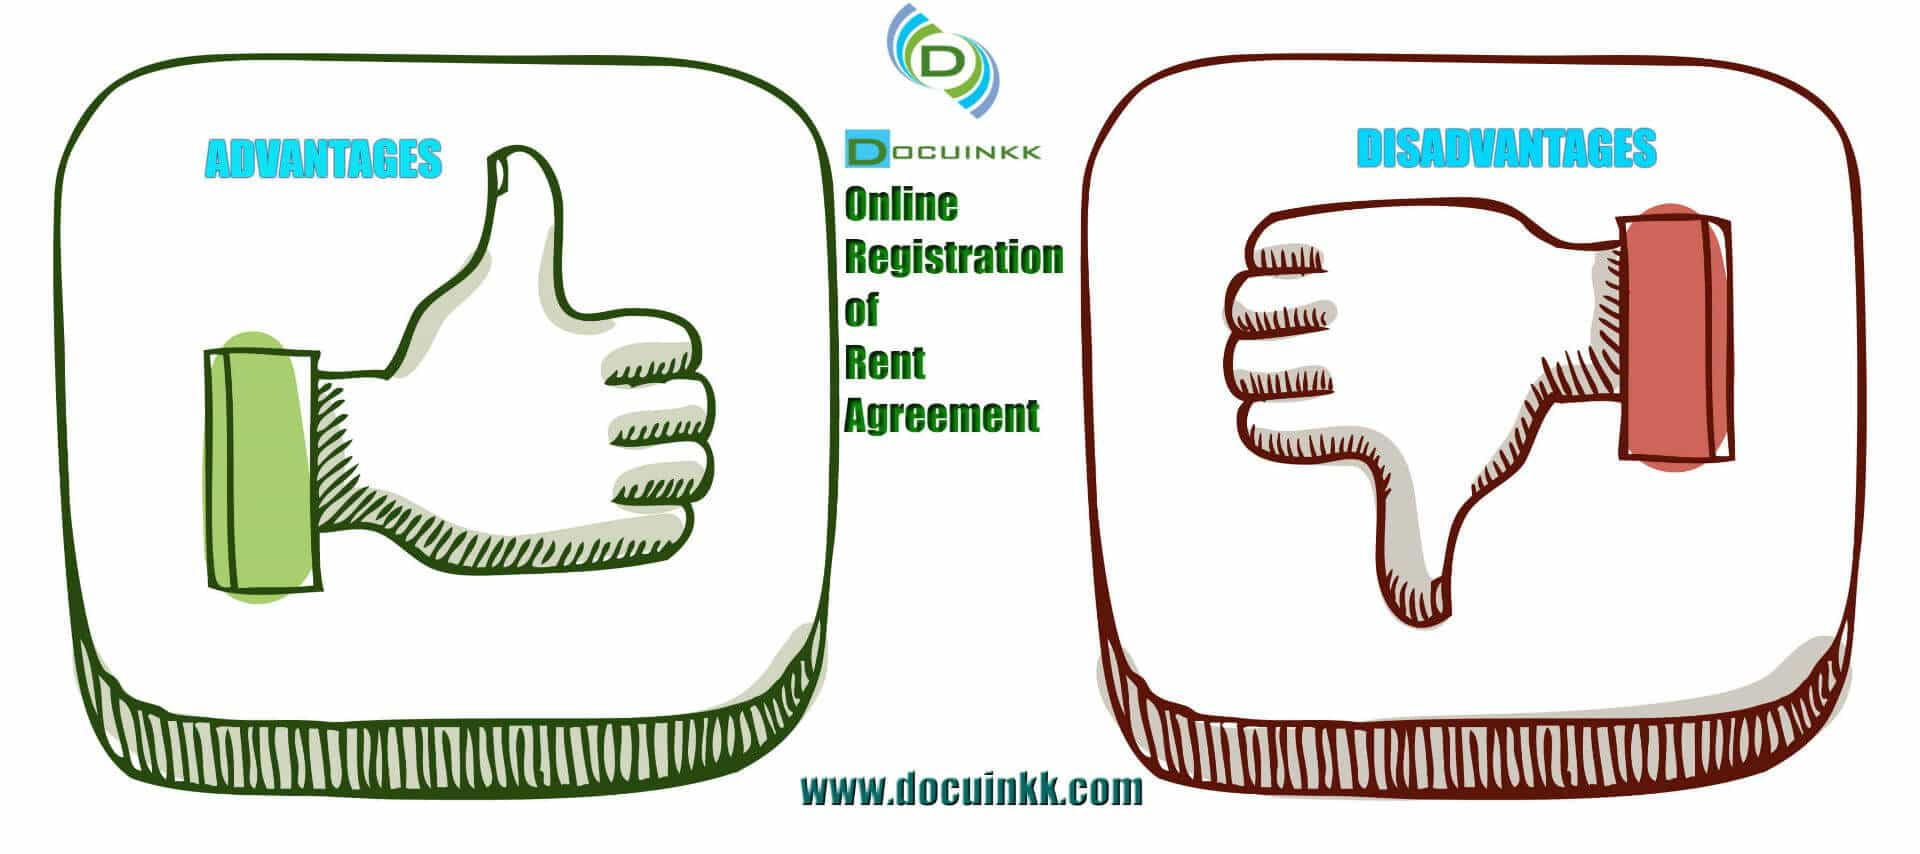 Pros And Cons Or Benefits Advantages And Disadvantages Of Online